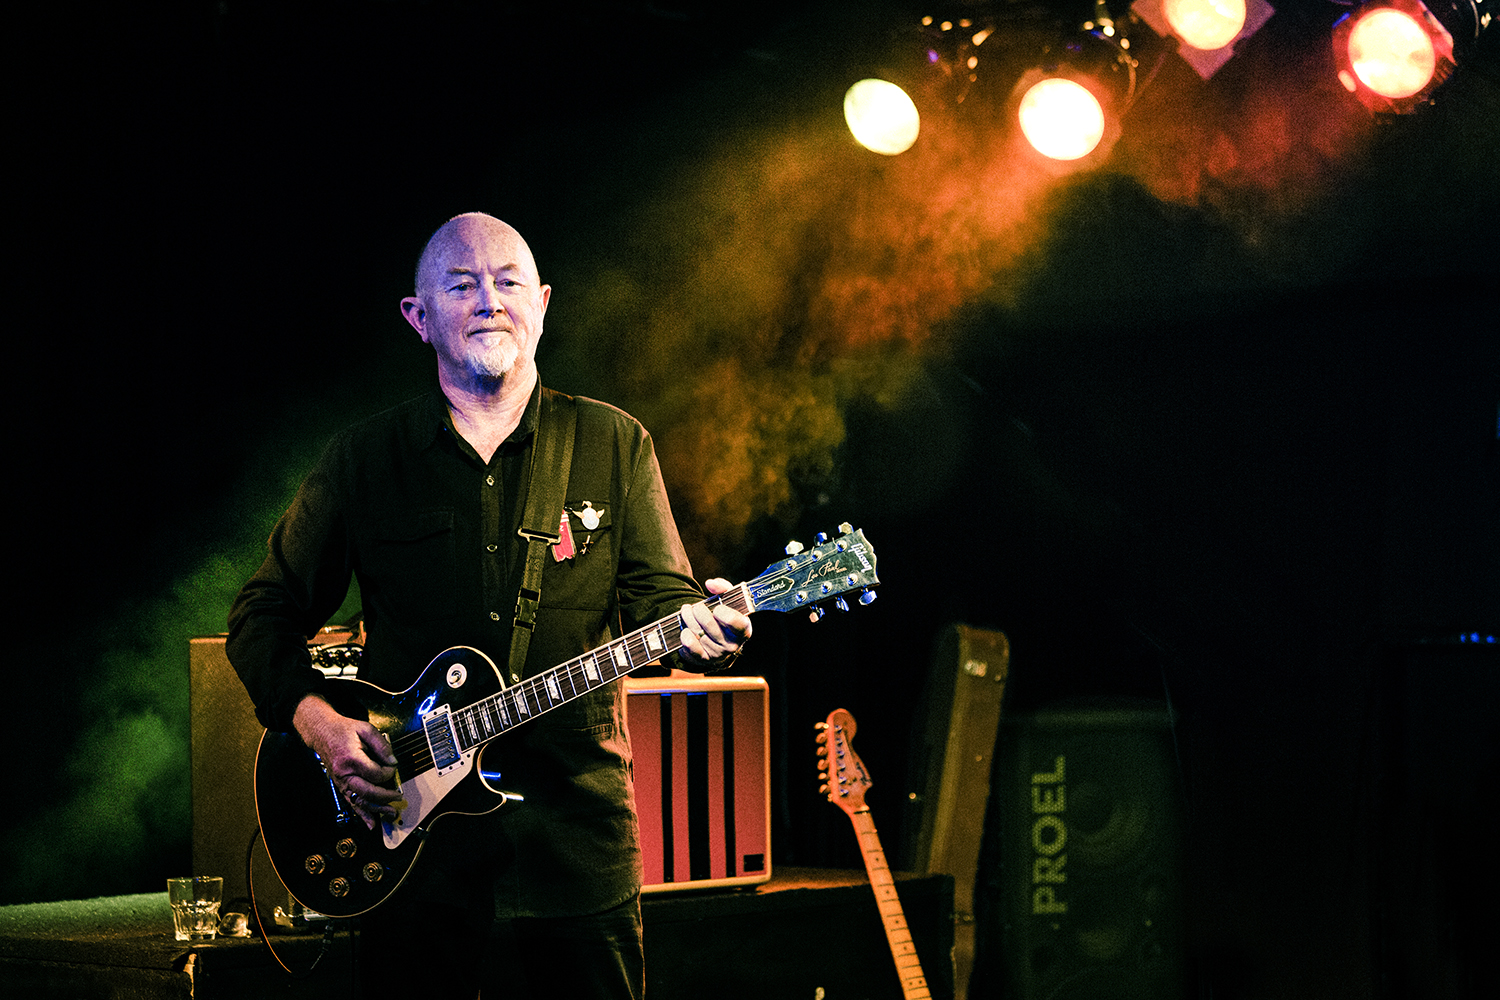 Dave Dobbyn Photo From A Live Performance